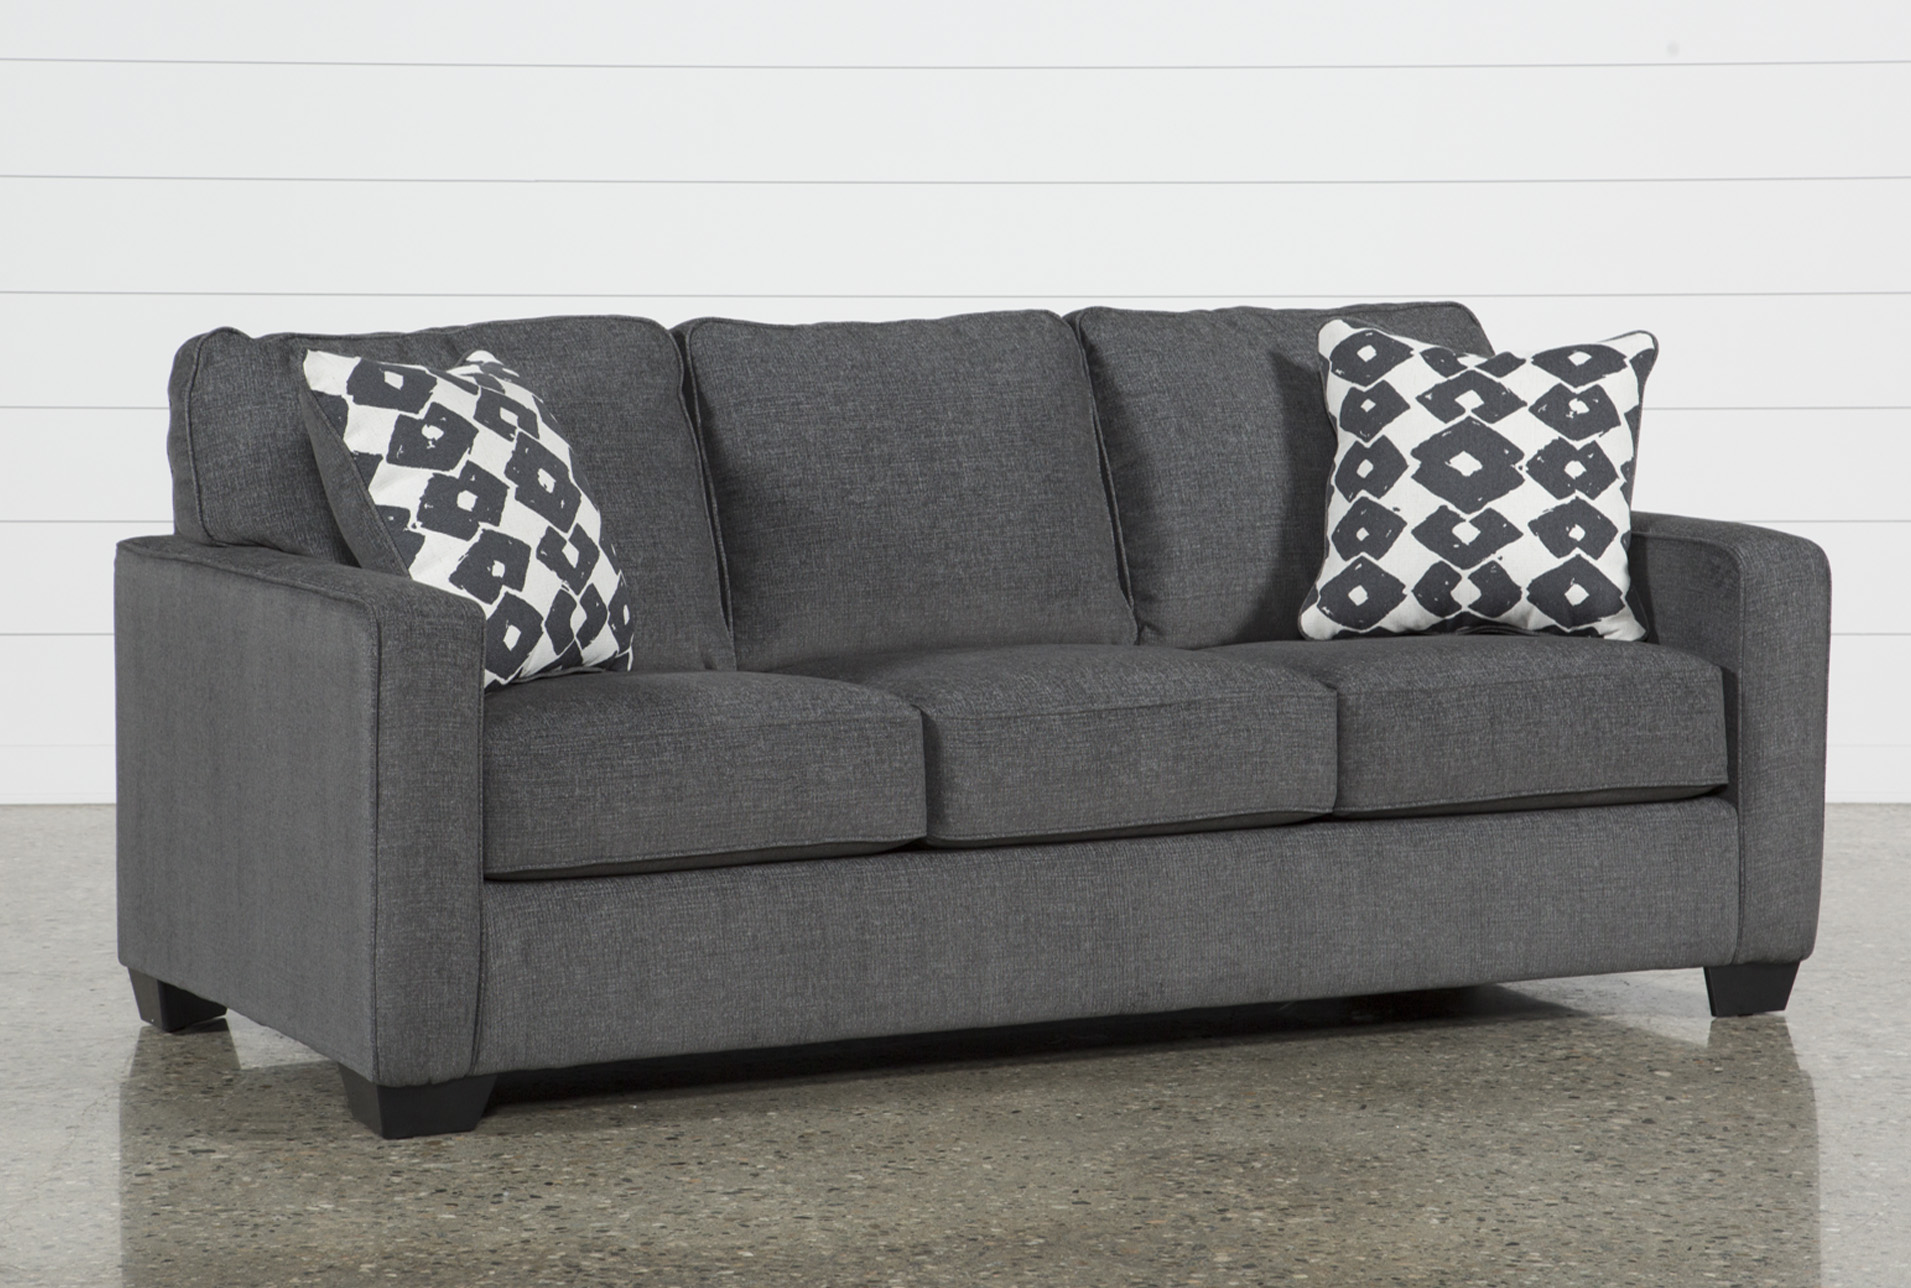 turdur queen sofa sleeper 61FVF8FX